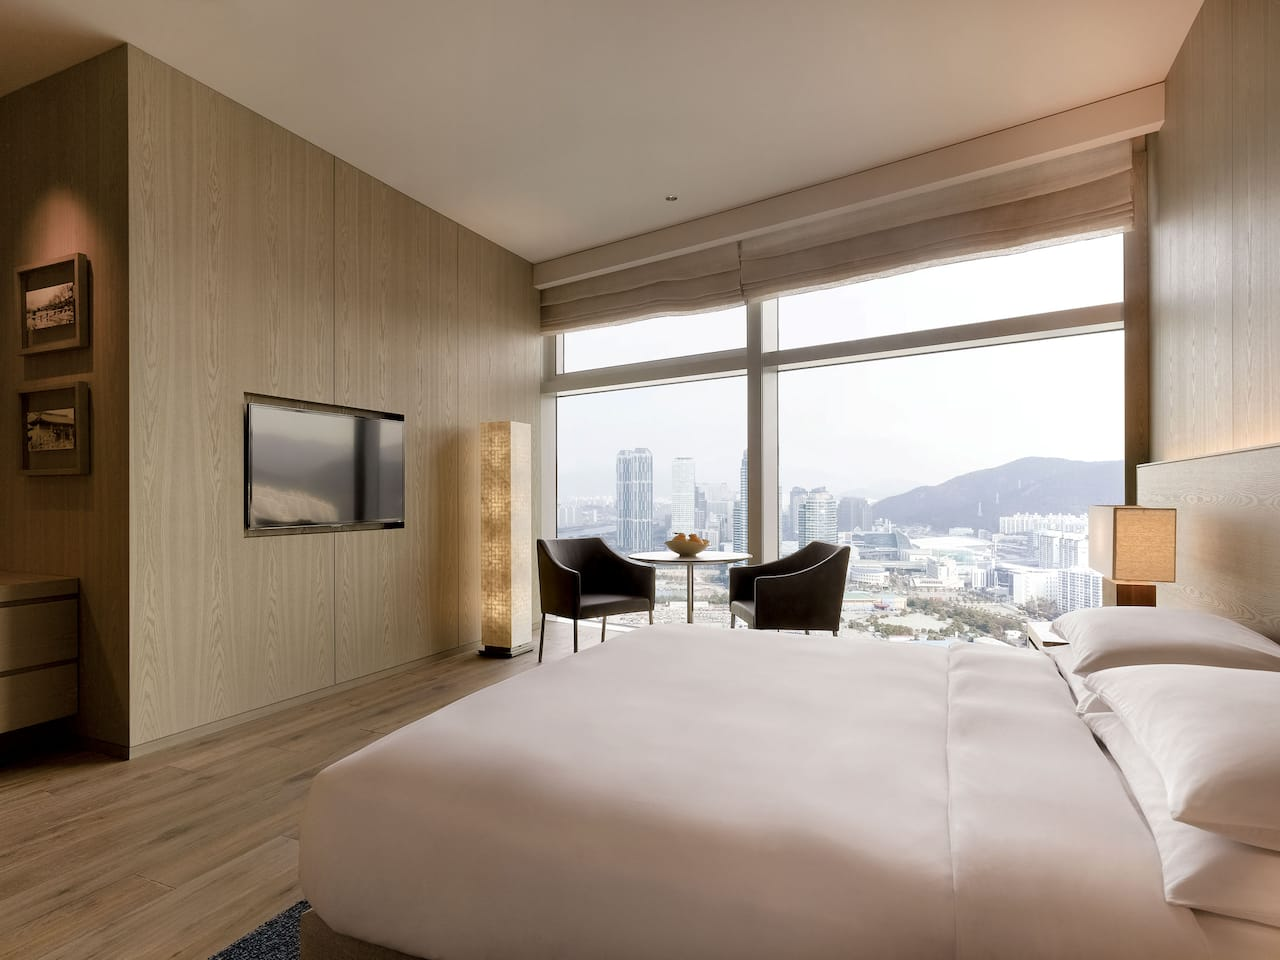 Busan Hotel King Bed Deluxe